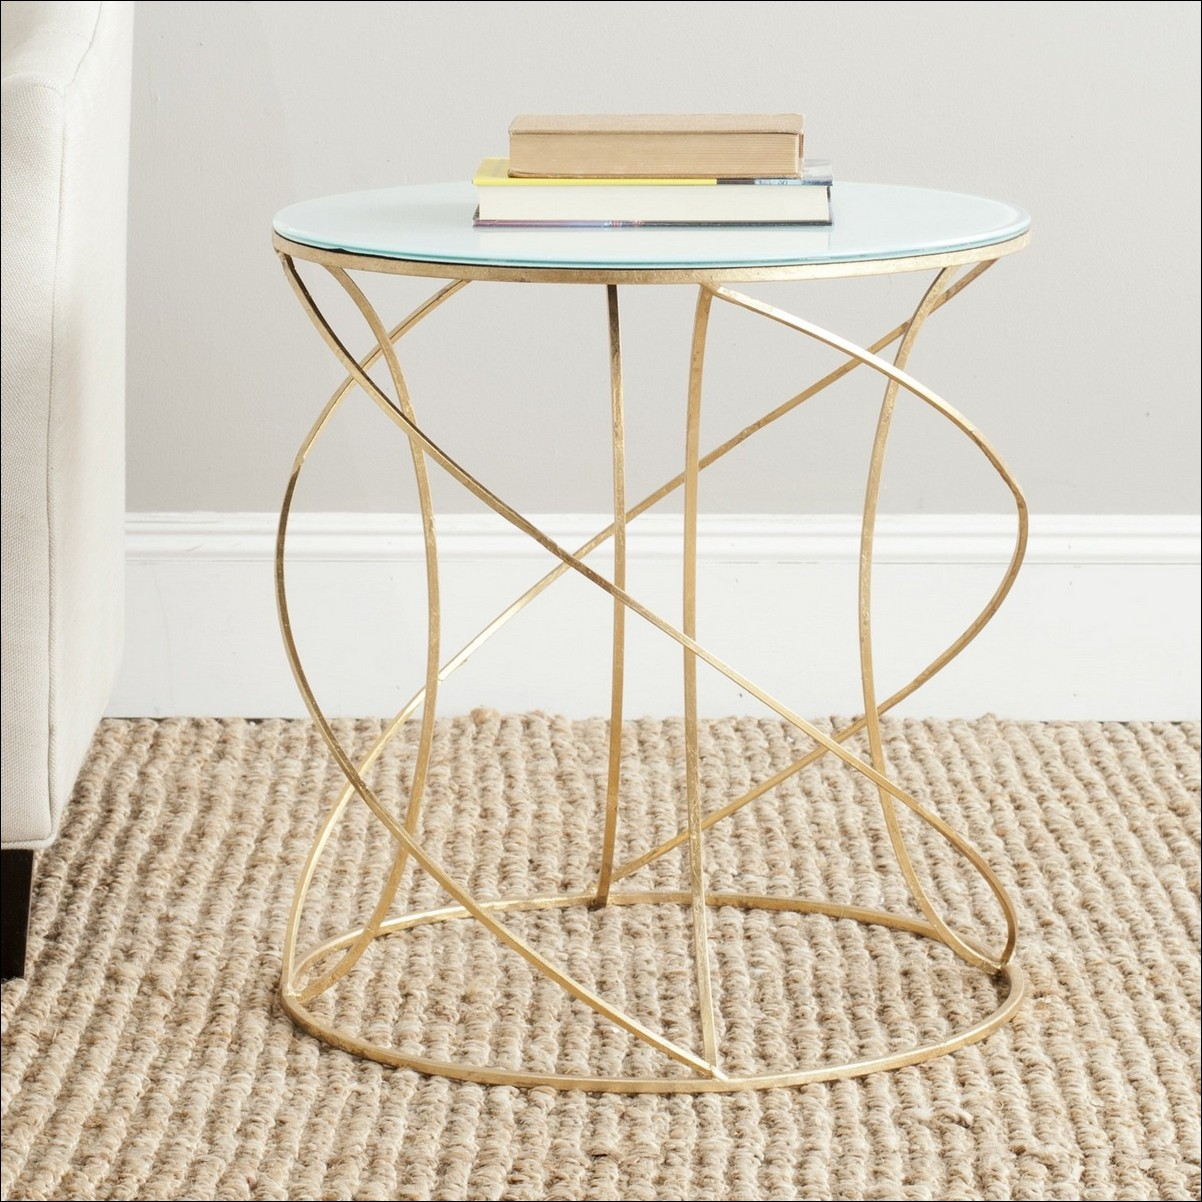 coffee accent tables decorating with ikea hobby lobby thumbnail modern living room furniture mid century glass table triangle jcpenney dishes tiffany style lamp shades red decor